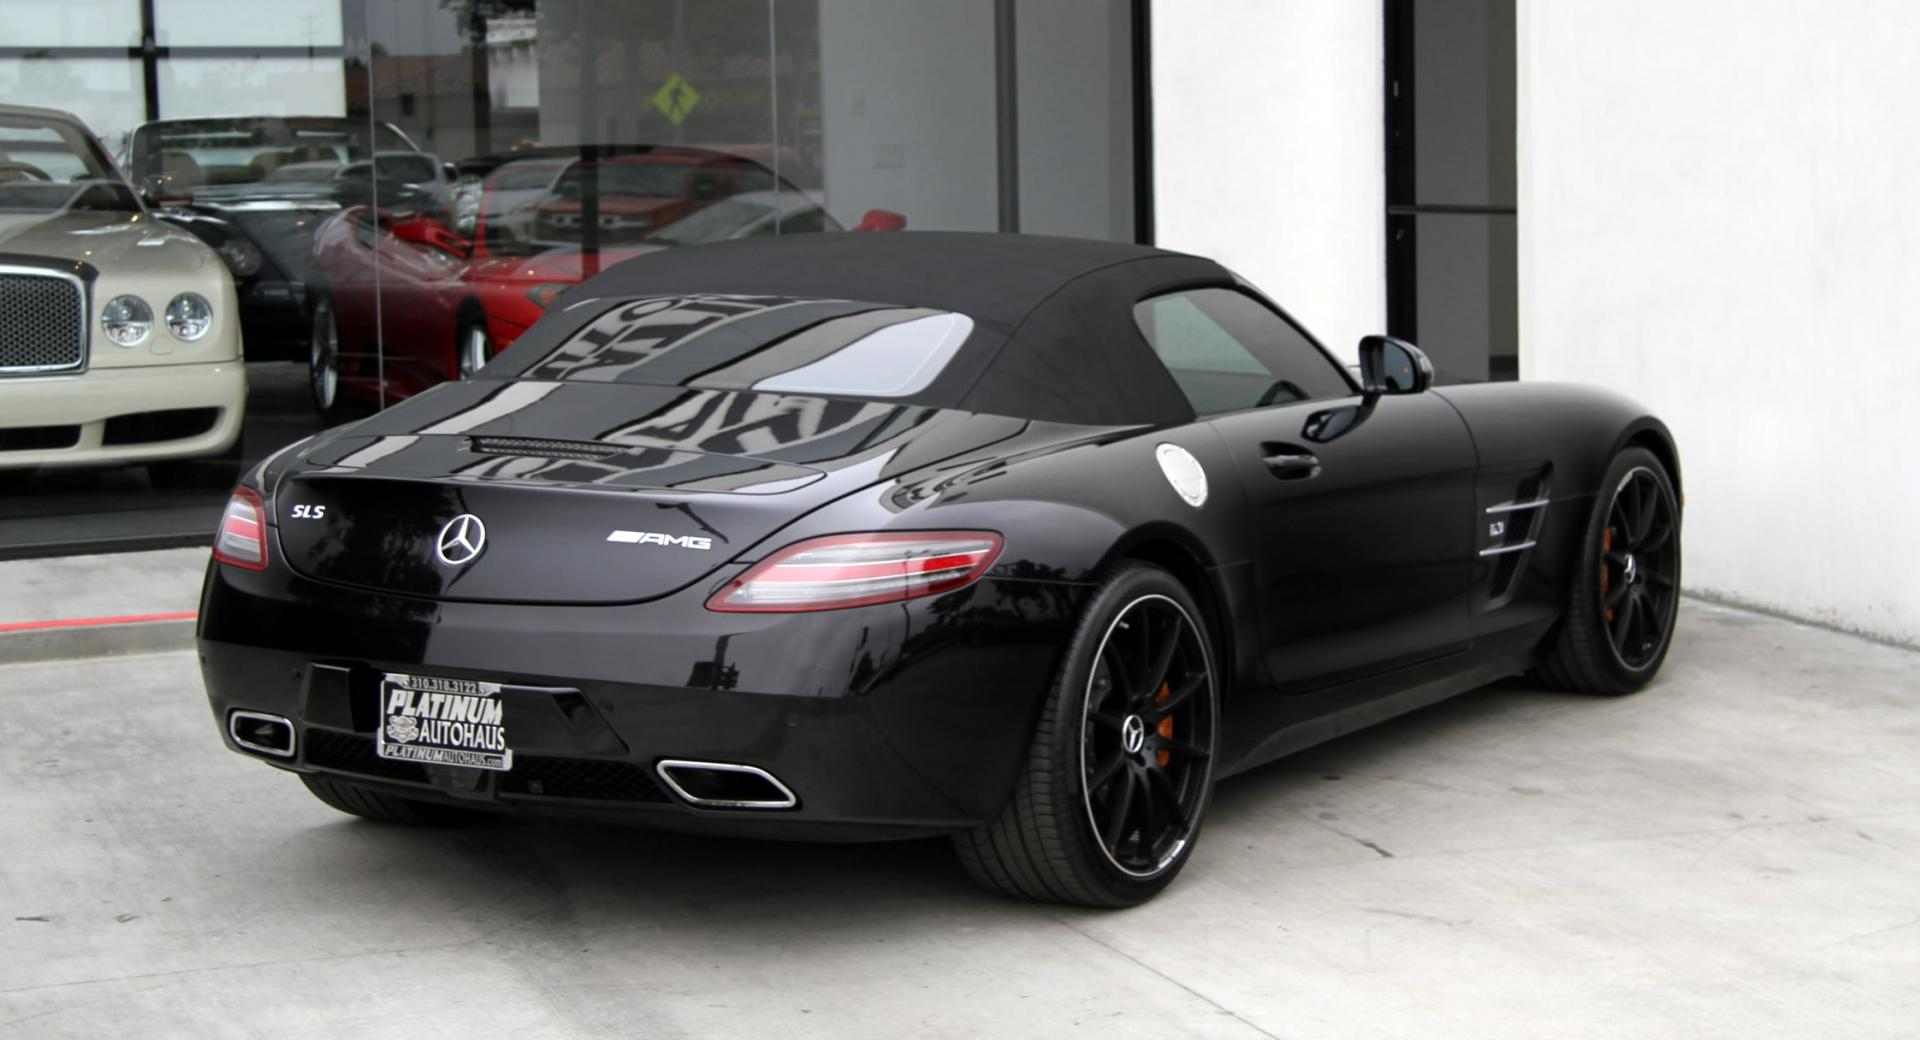 2012 mercedes benz sls 63 amg stock 5903 for sale near redondo beach ca ca mercedes benz dealer. Black Bedroom Furniture Sets. Home Design Ideas